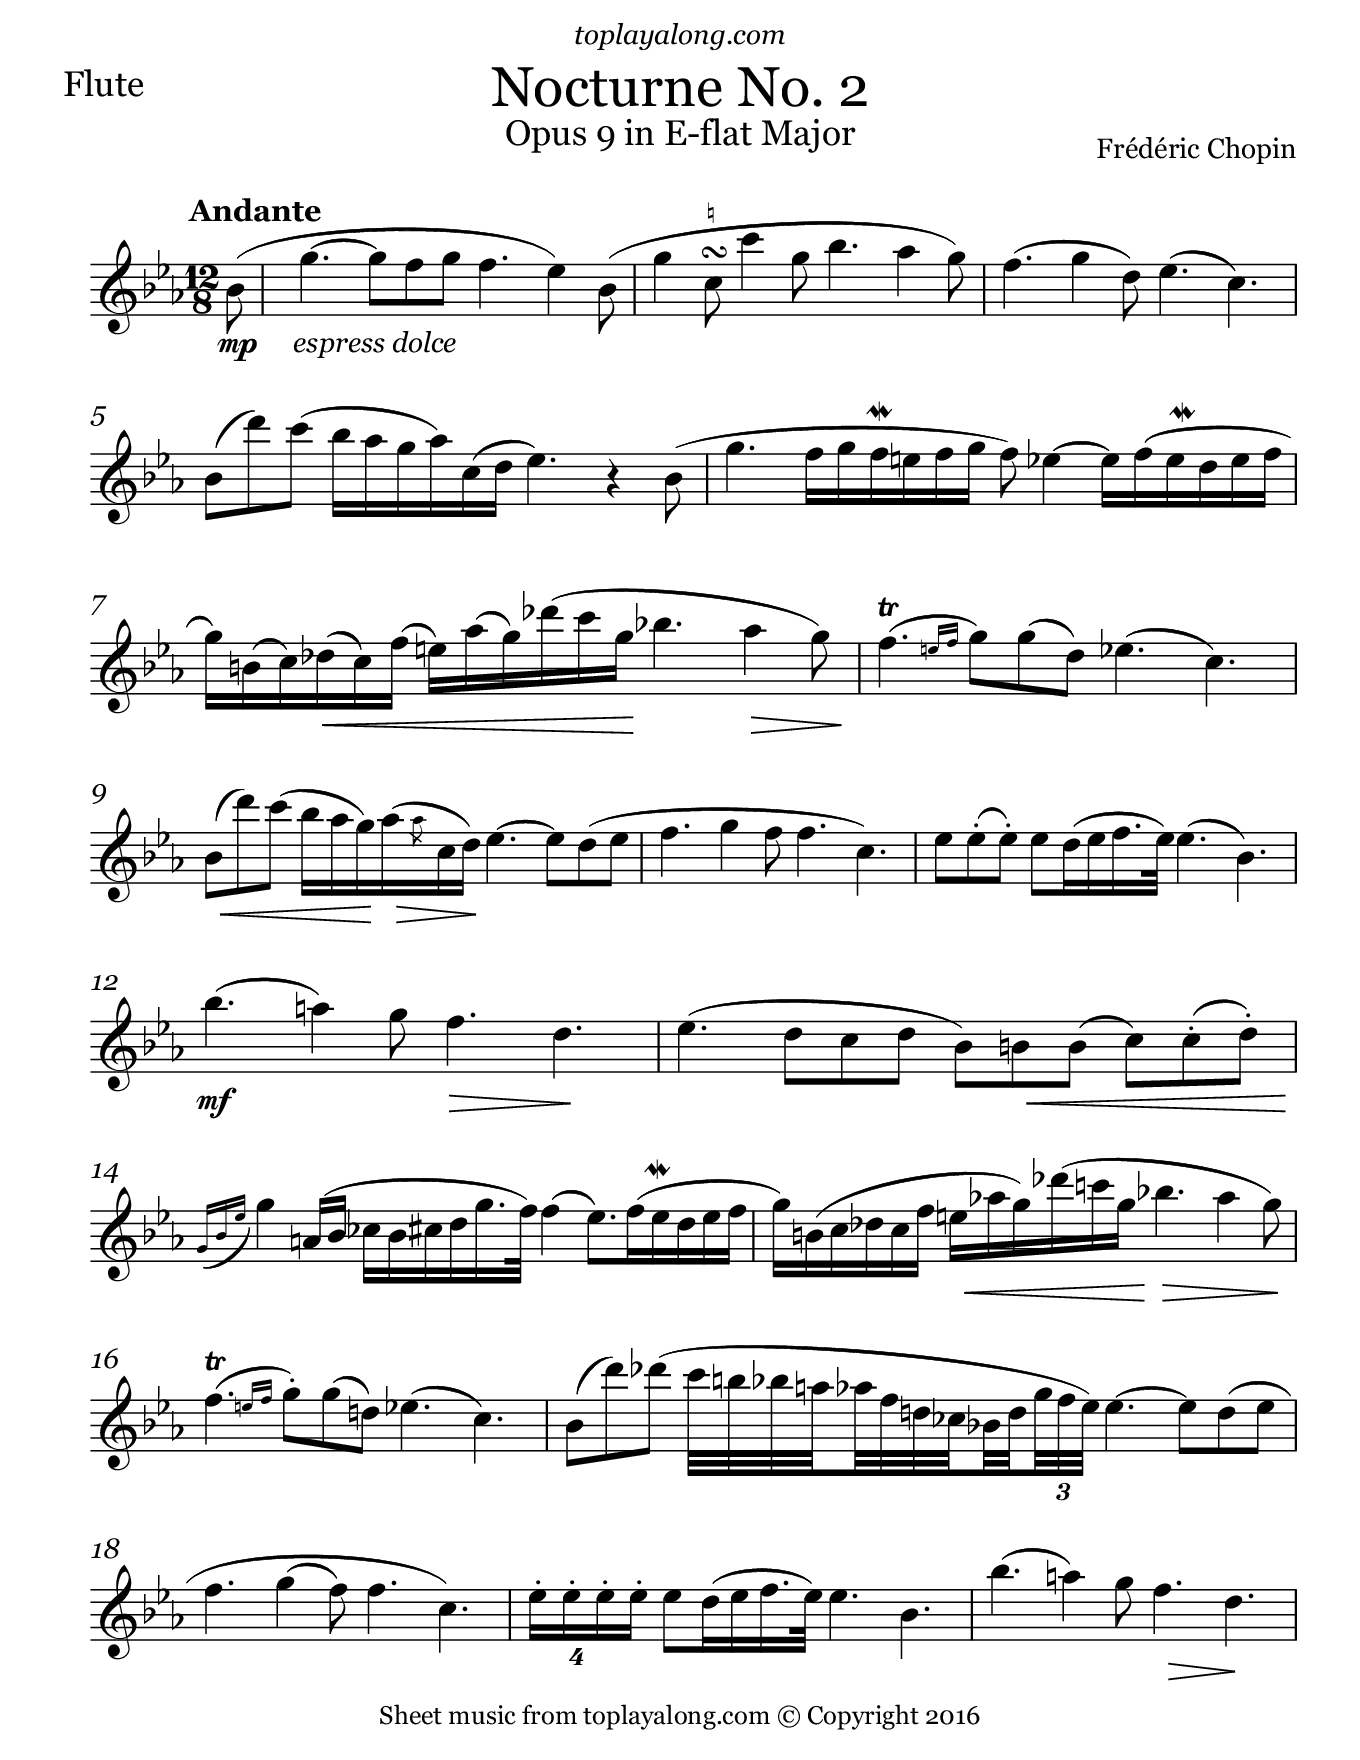 Nocturne No. 2 Op. 9 by Chopin. Sheet music for Flute, page 1.